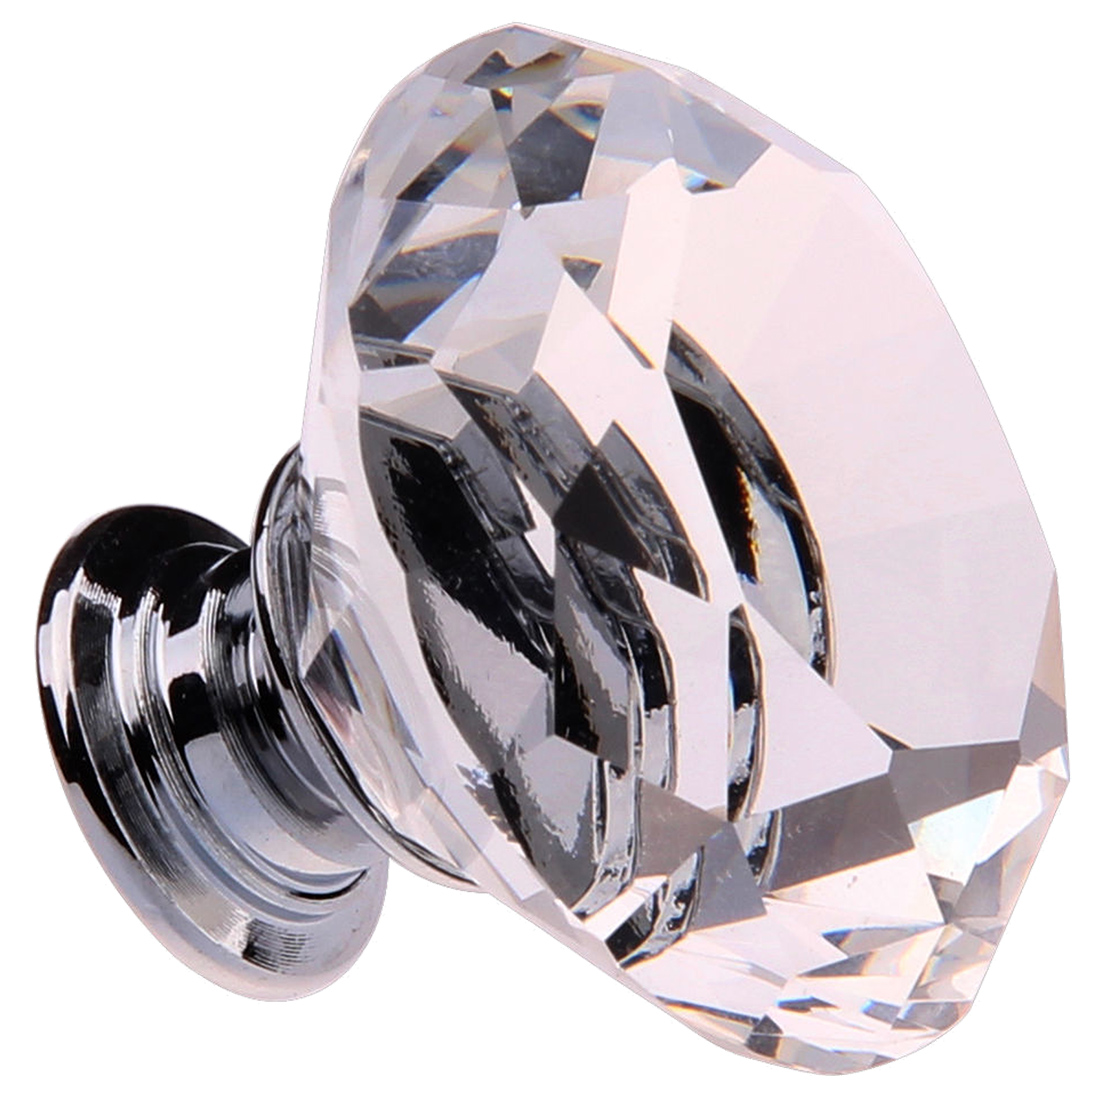 8X 40MM Clear Crystal Glass Door Knobs Handles Diamond Drawer Cabinet Furniture